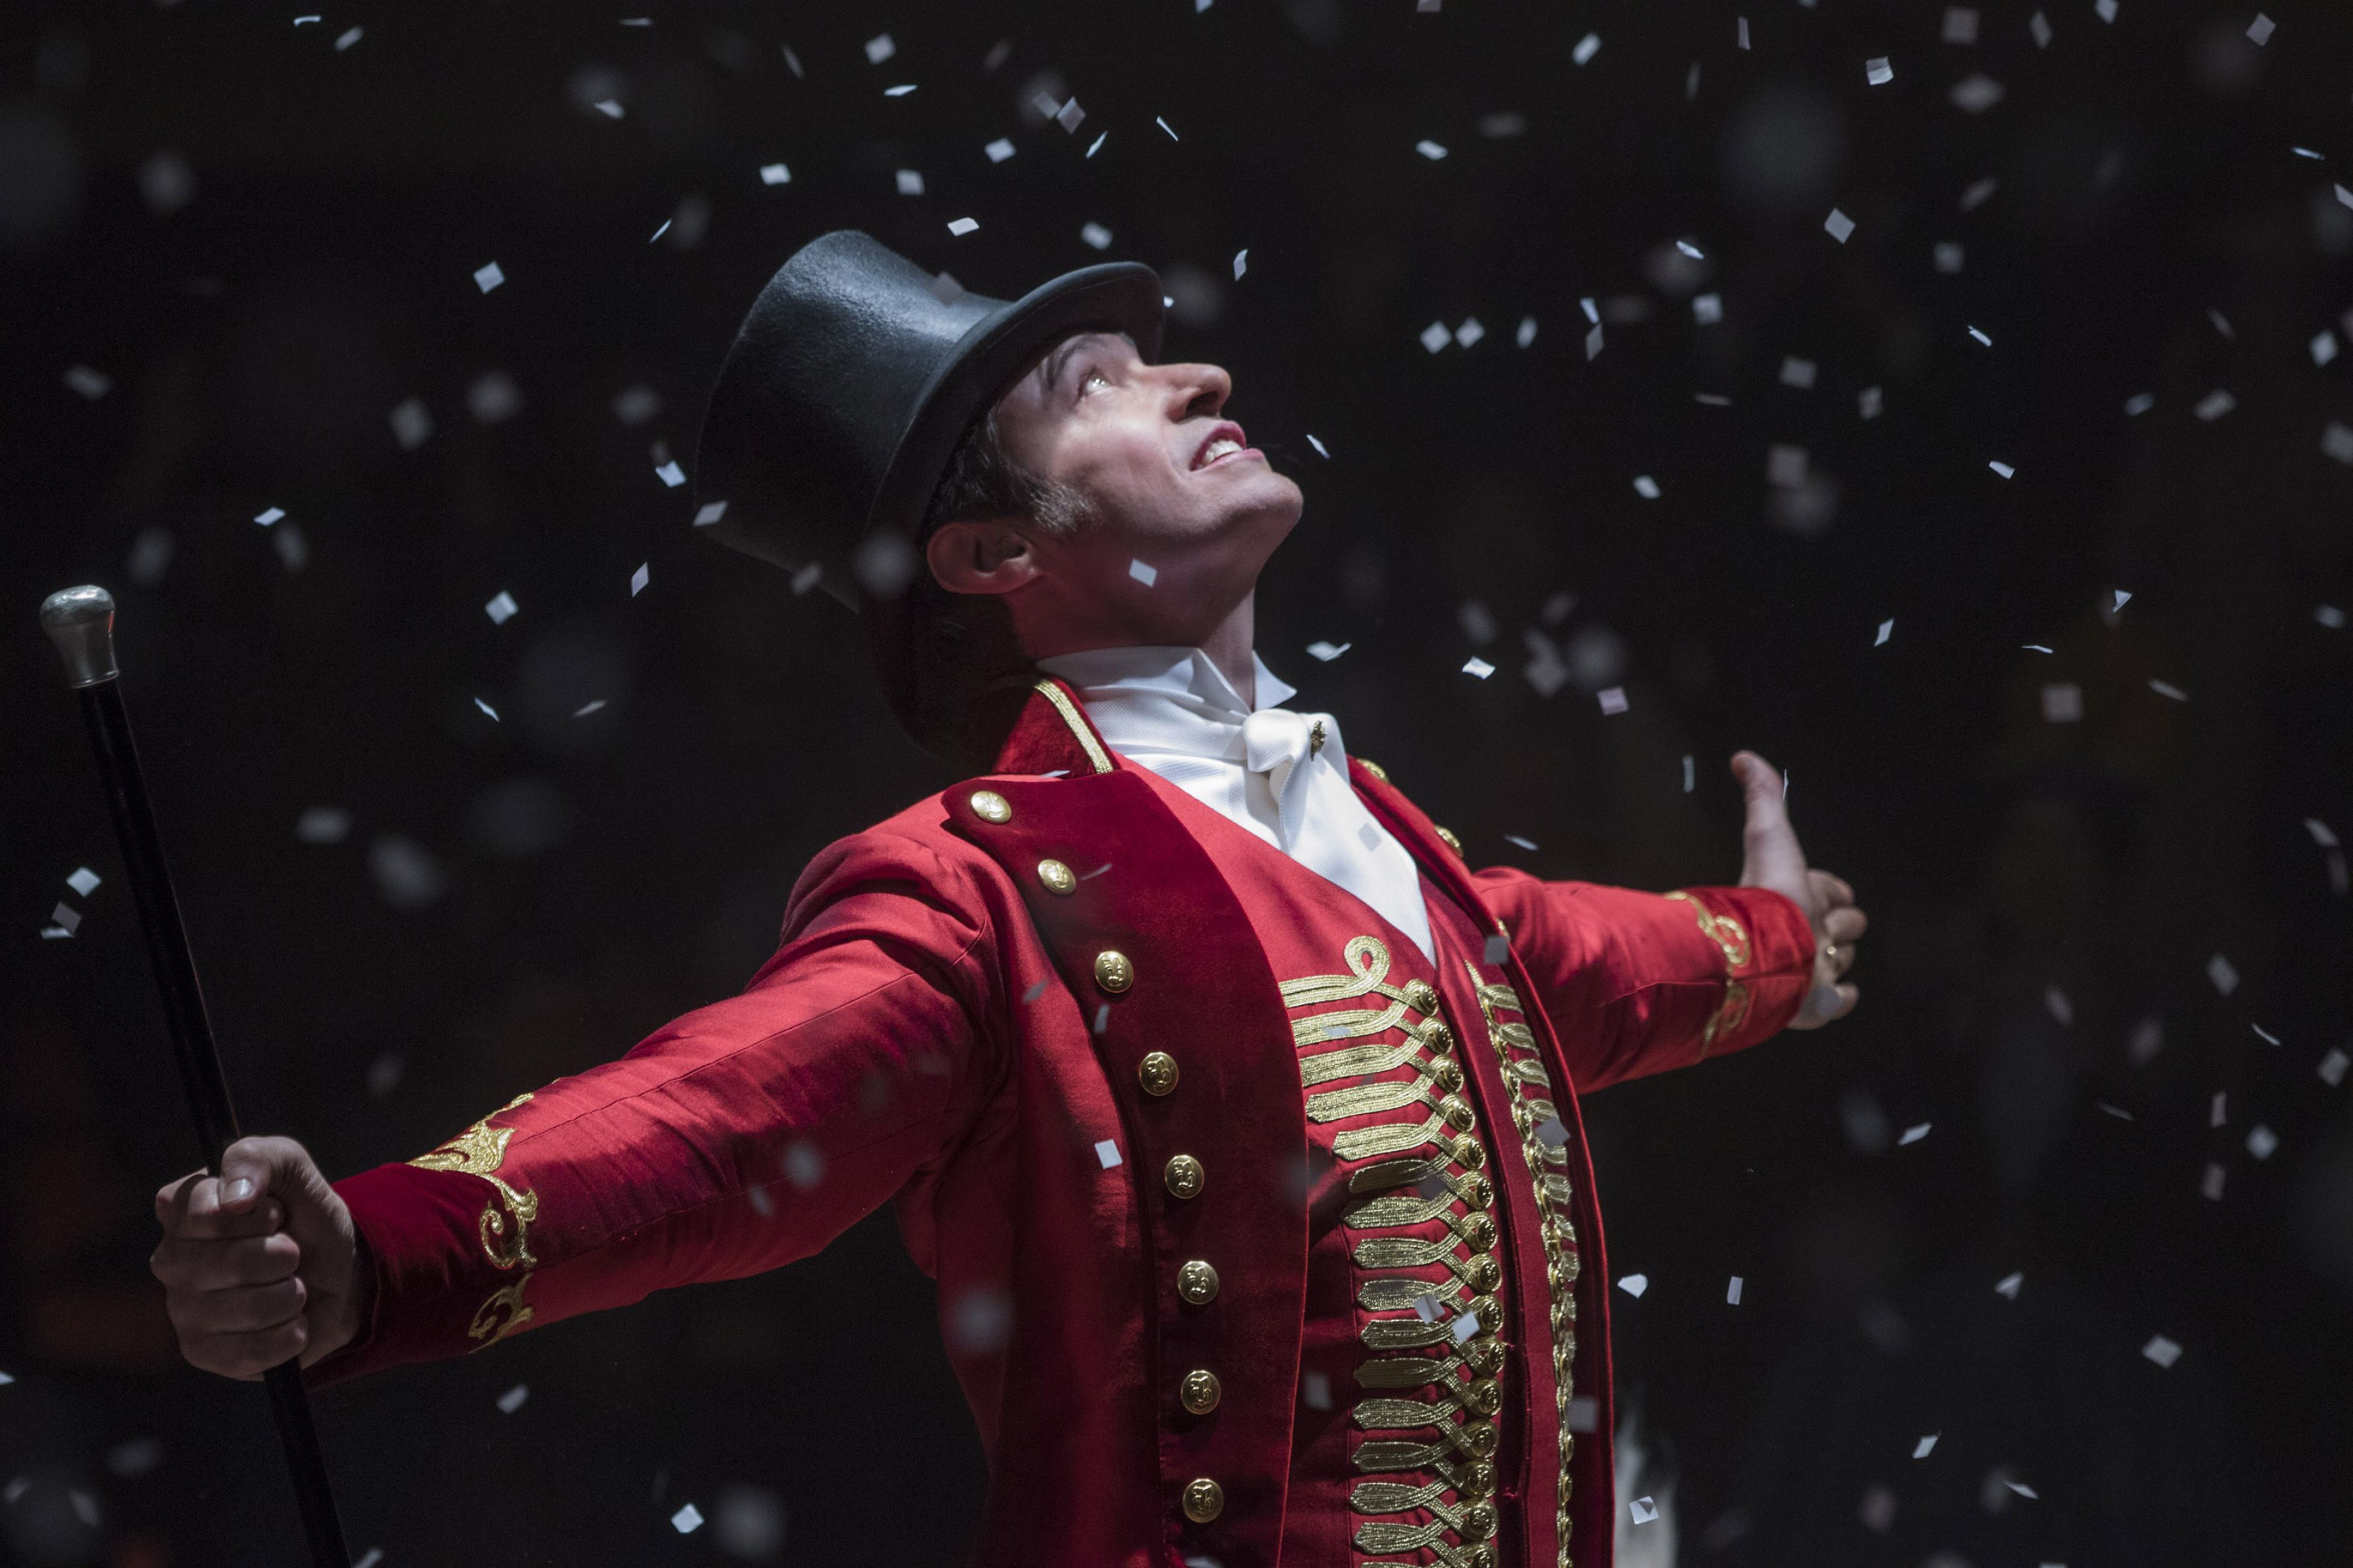 Hugh Jackman Says He's Up For A 'Greatest Showman' Sequel, But Reveals It Might Not Be